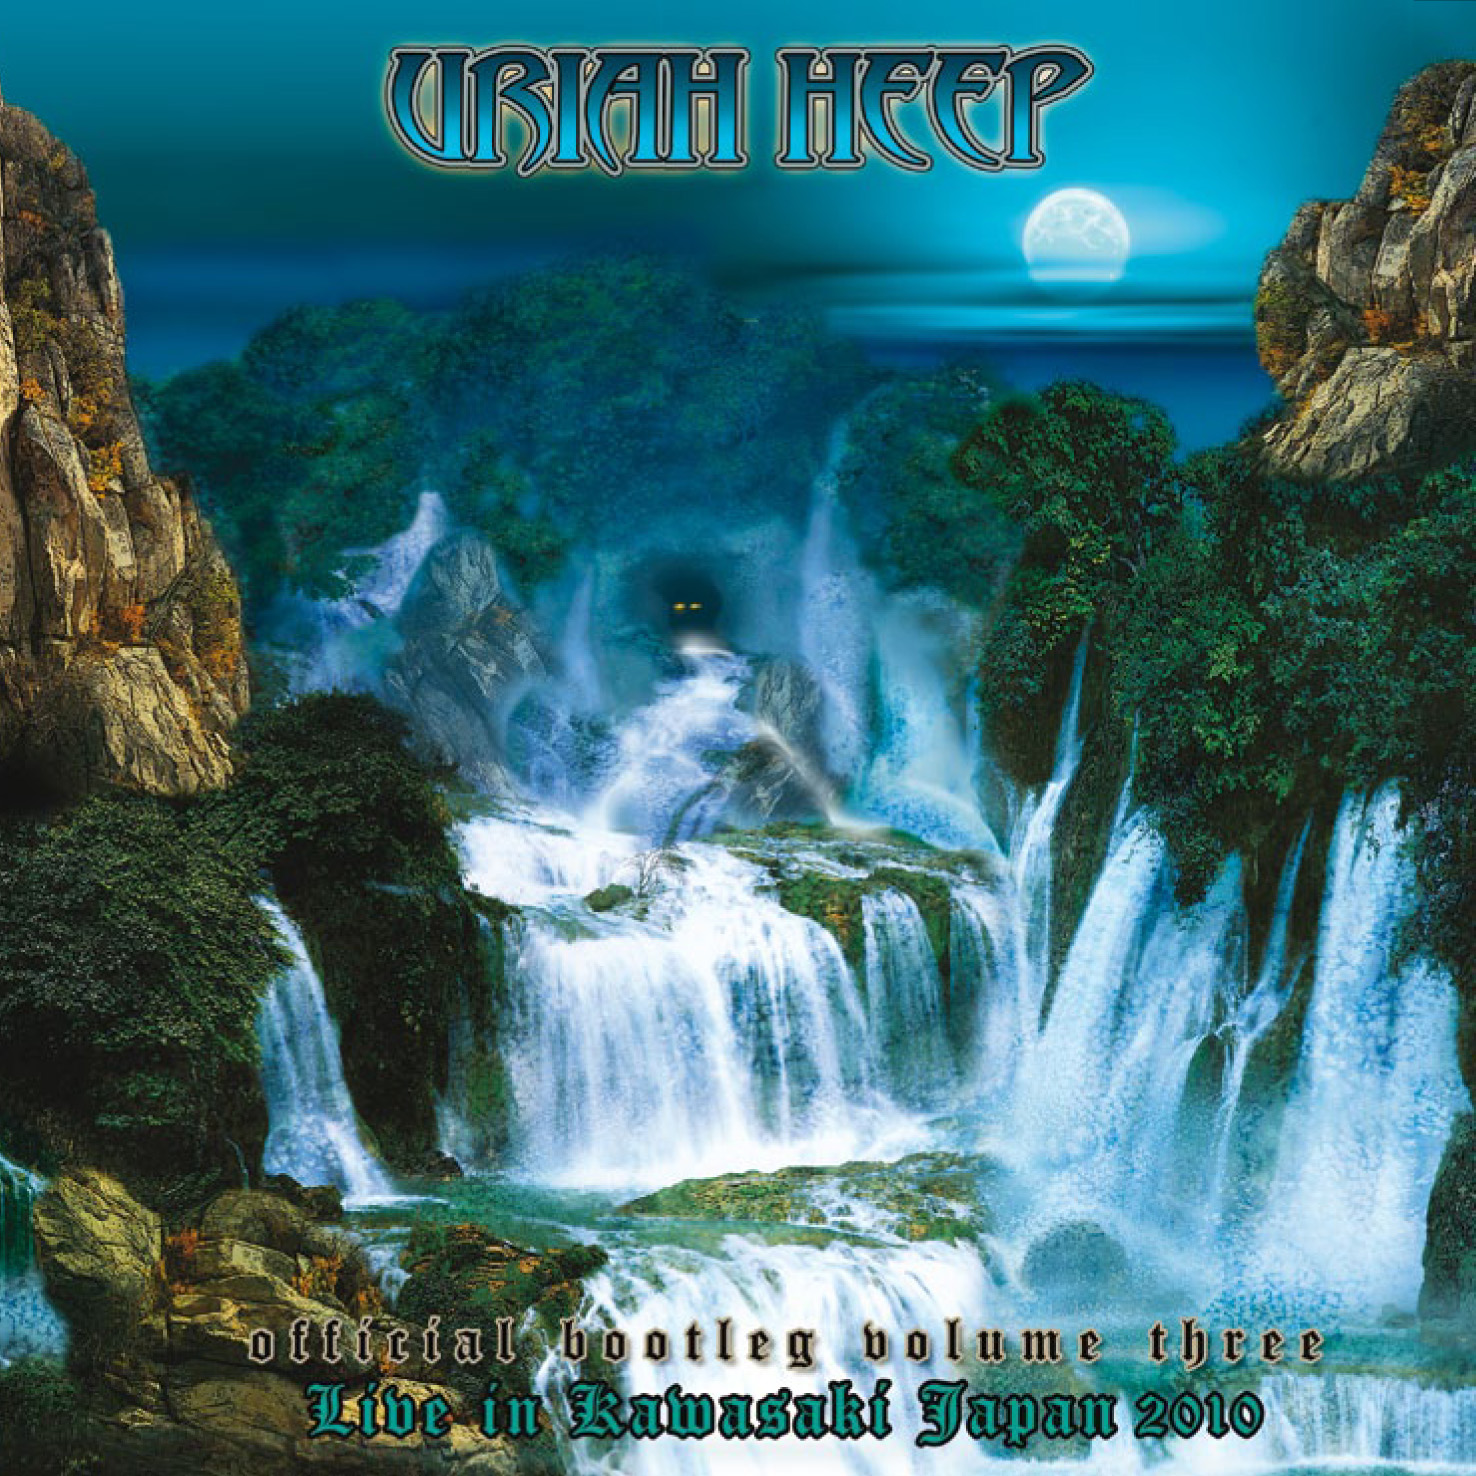 J J D 's Reviews And Interviews Blog: Uriah Heep - Official Bootleg